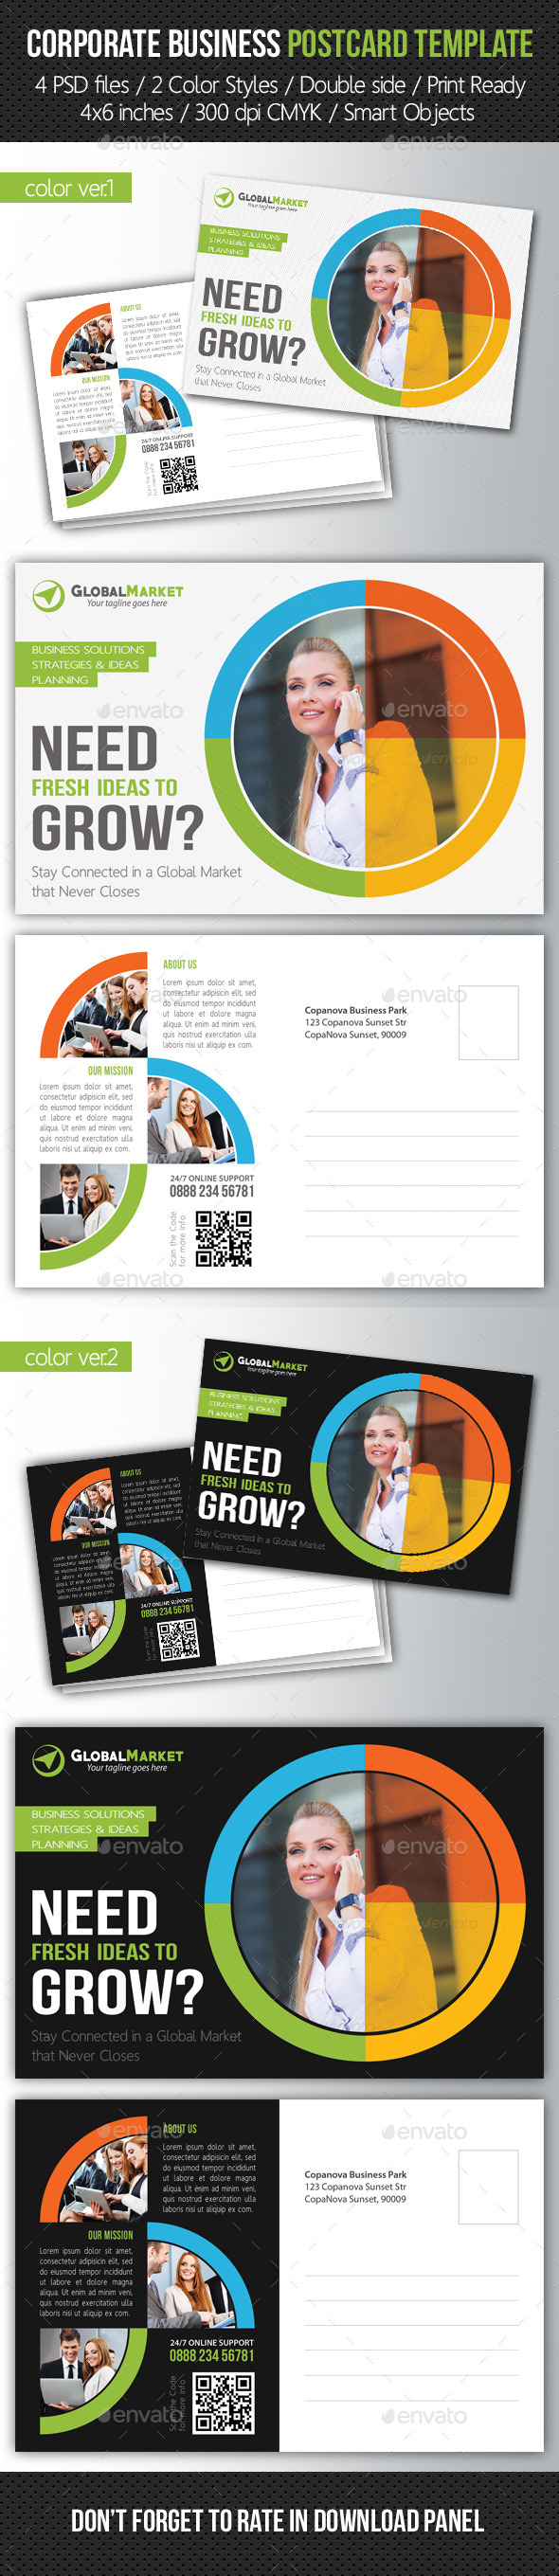 GraphicRiver Corporate Business Postcard Template V03 10253301